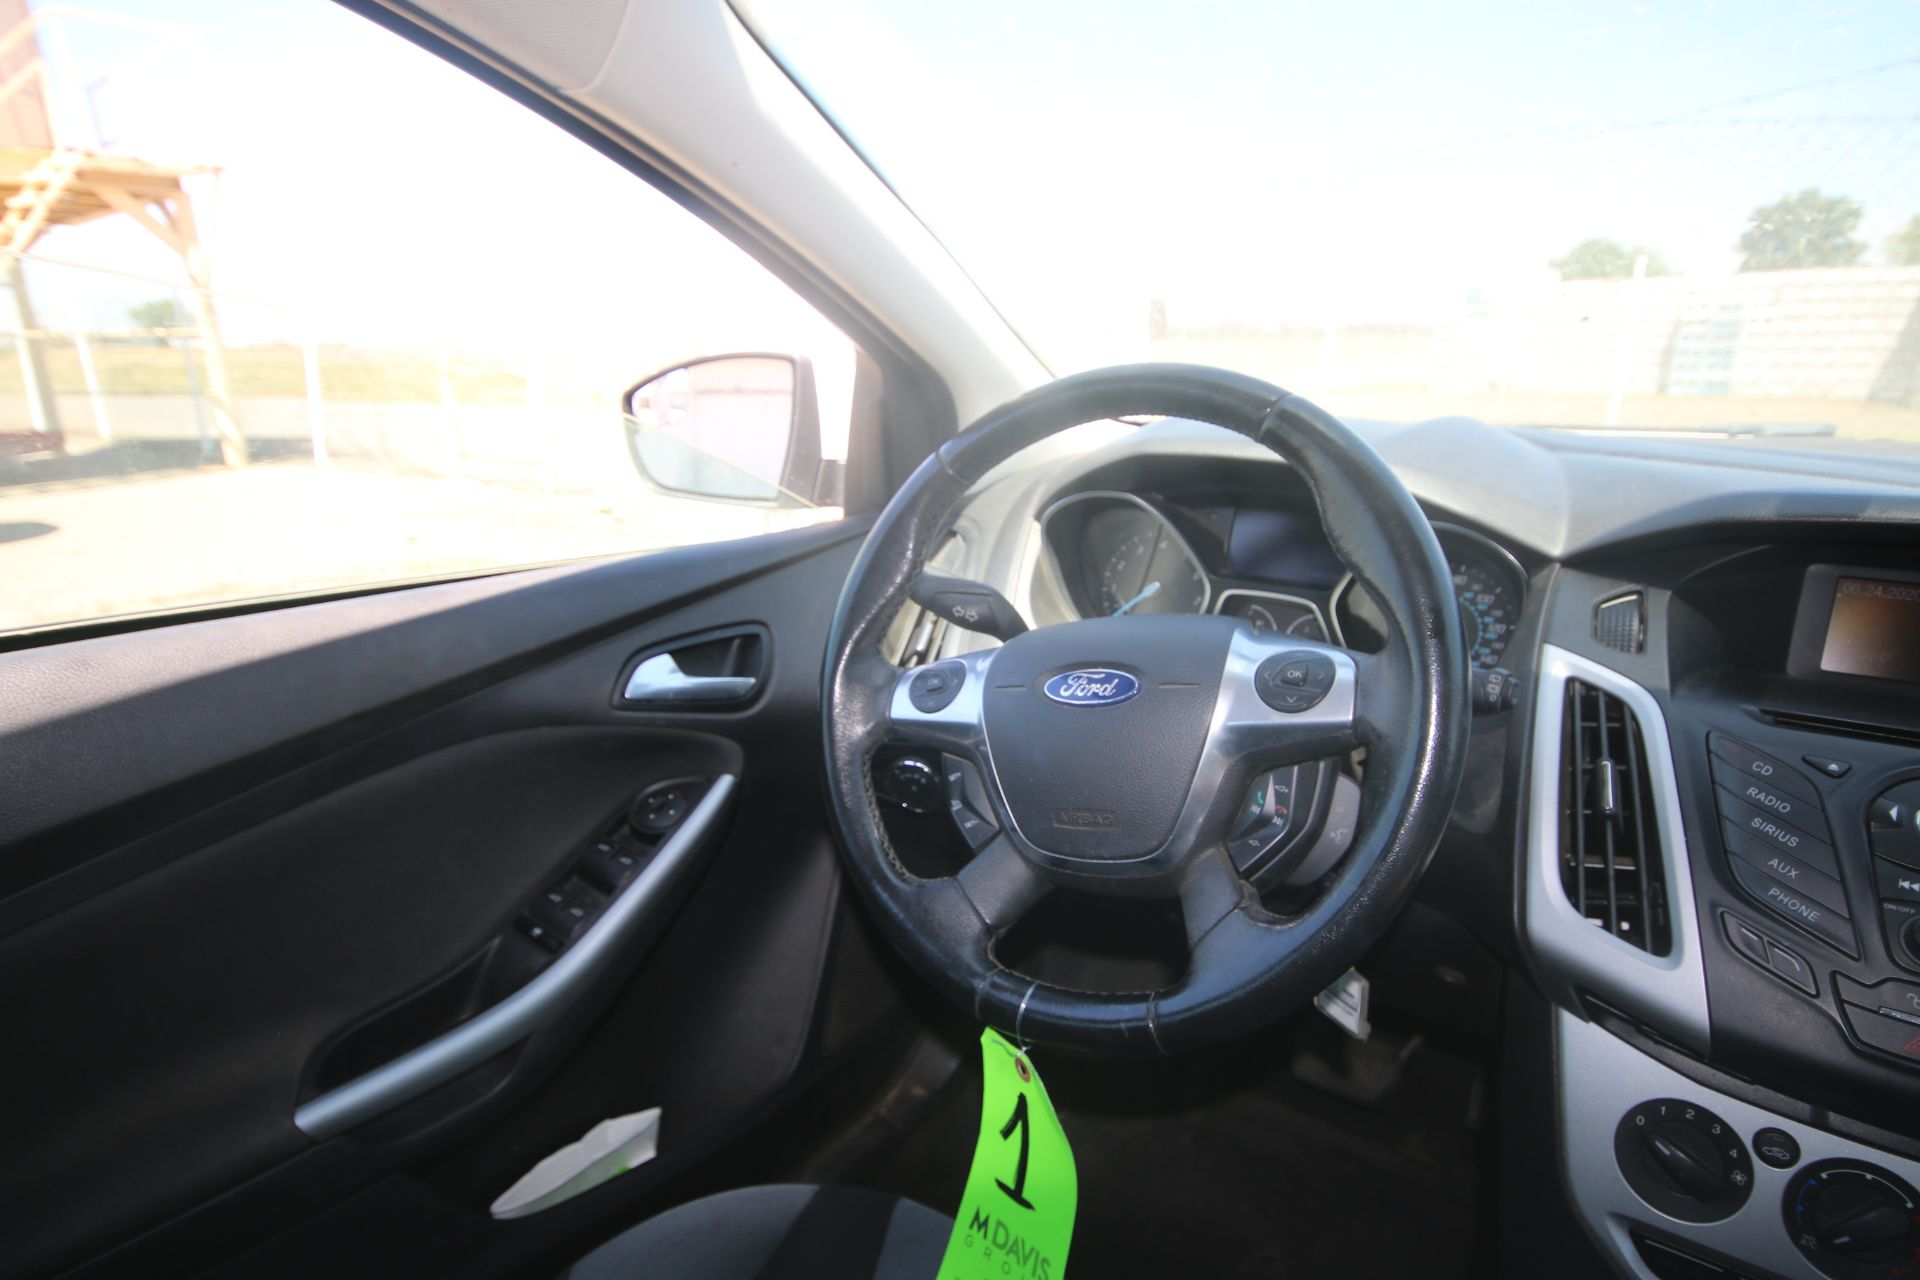 2012 White Ford Focus SE Hatchback 4D, VIN #: 1FAHP3K27CL423326, with 116,017 Miles, with 4-Doors, - Image 11 of 26